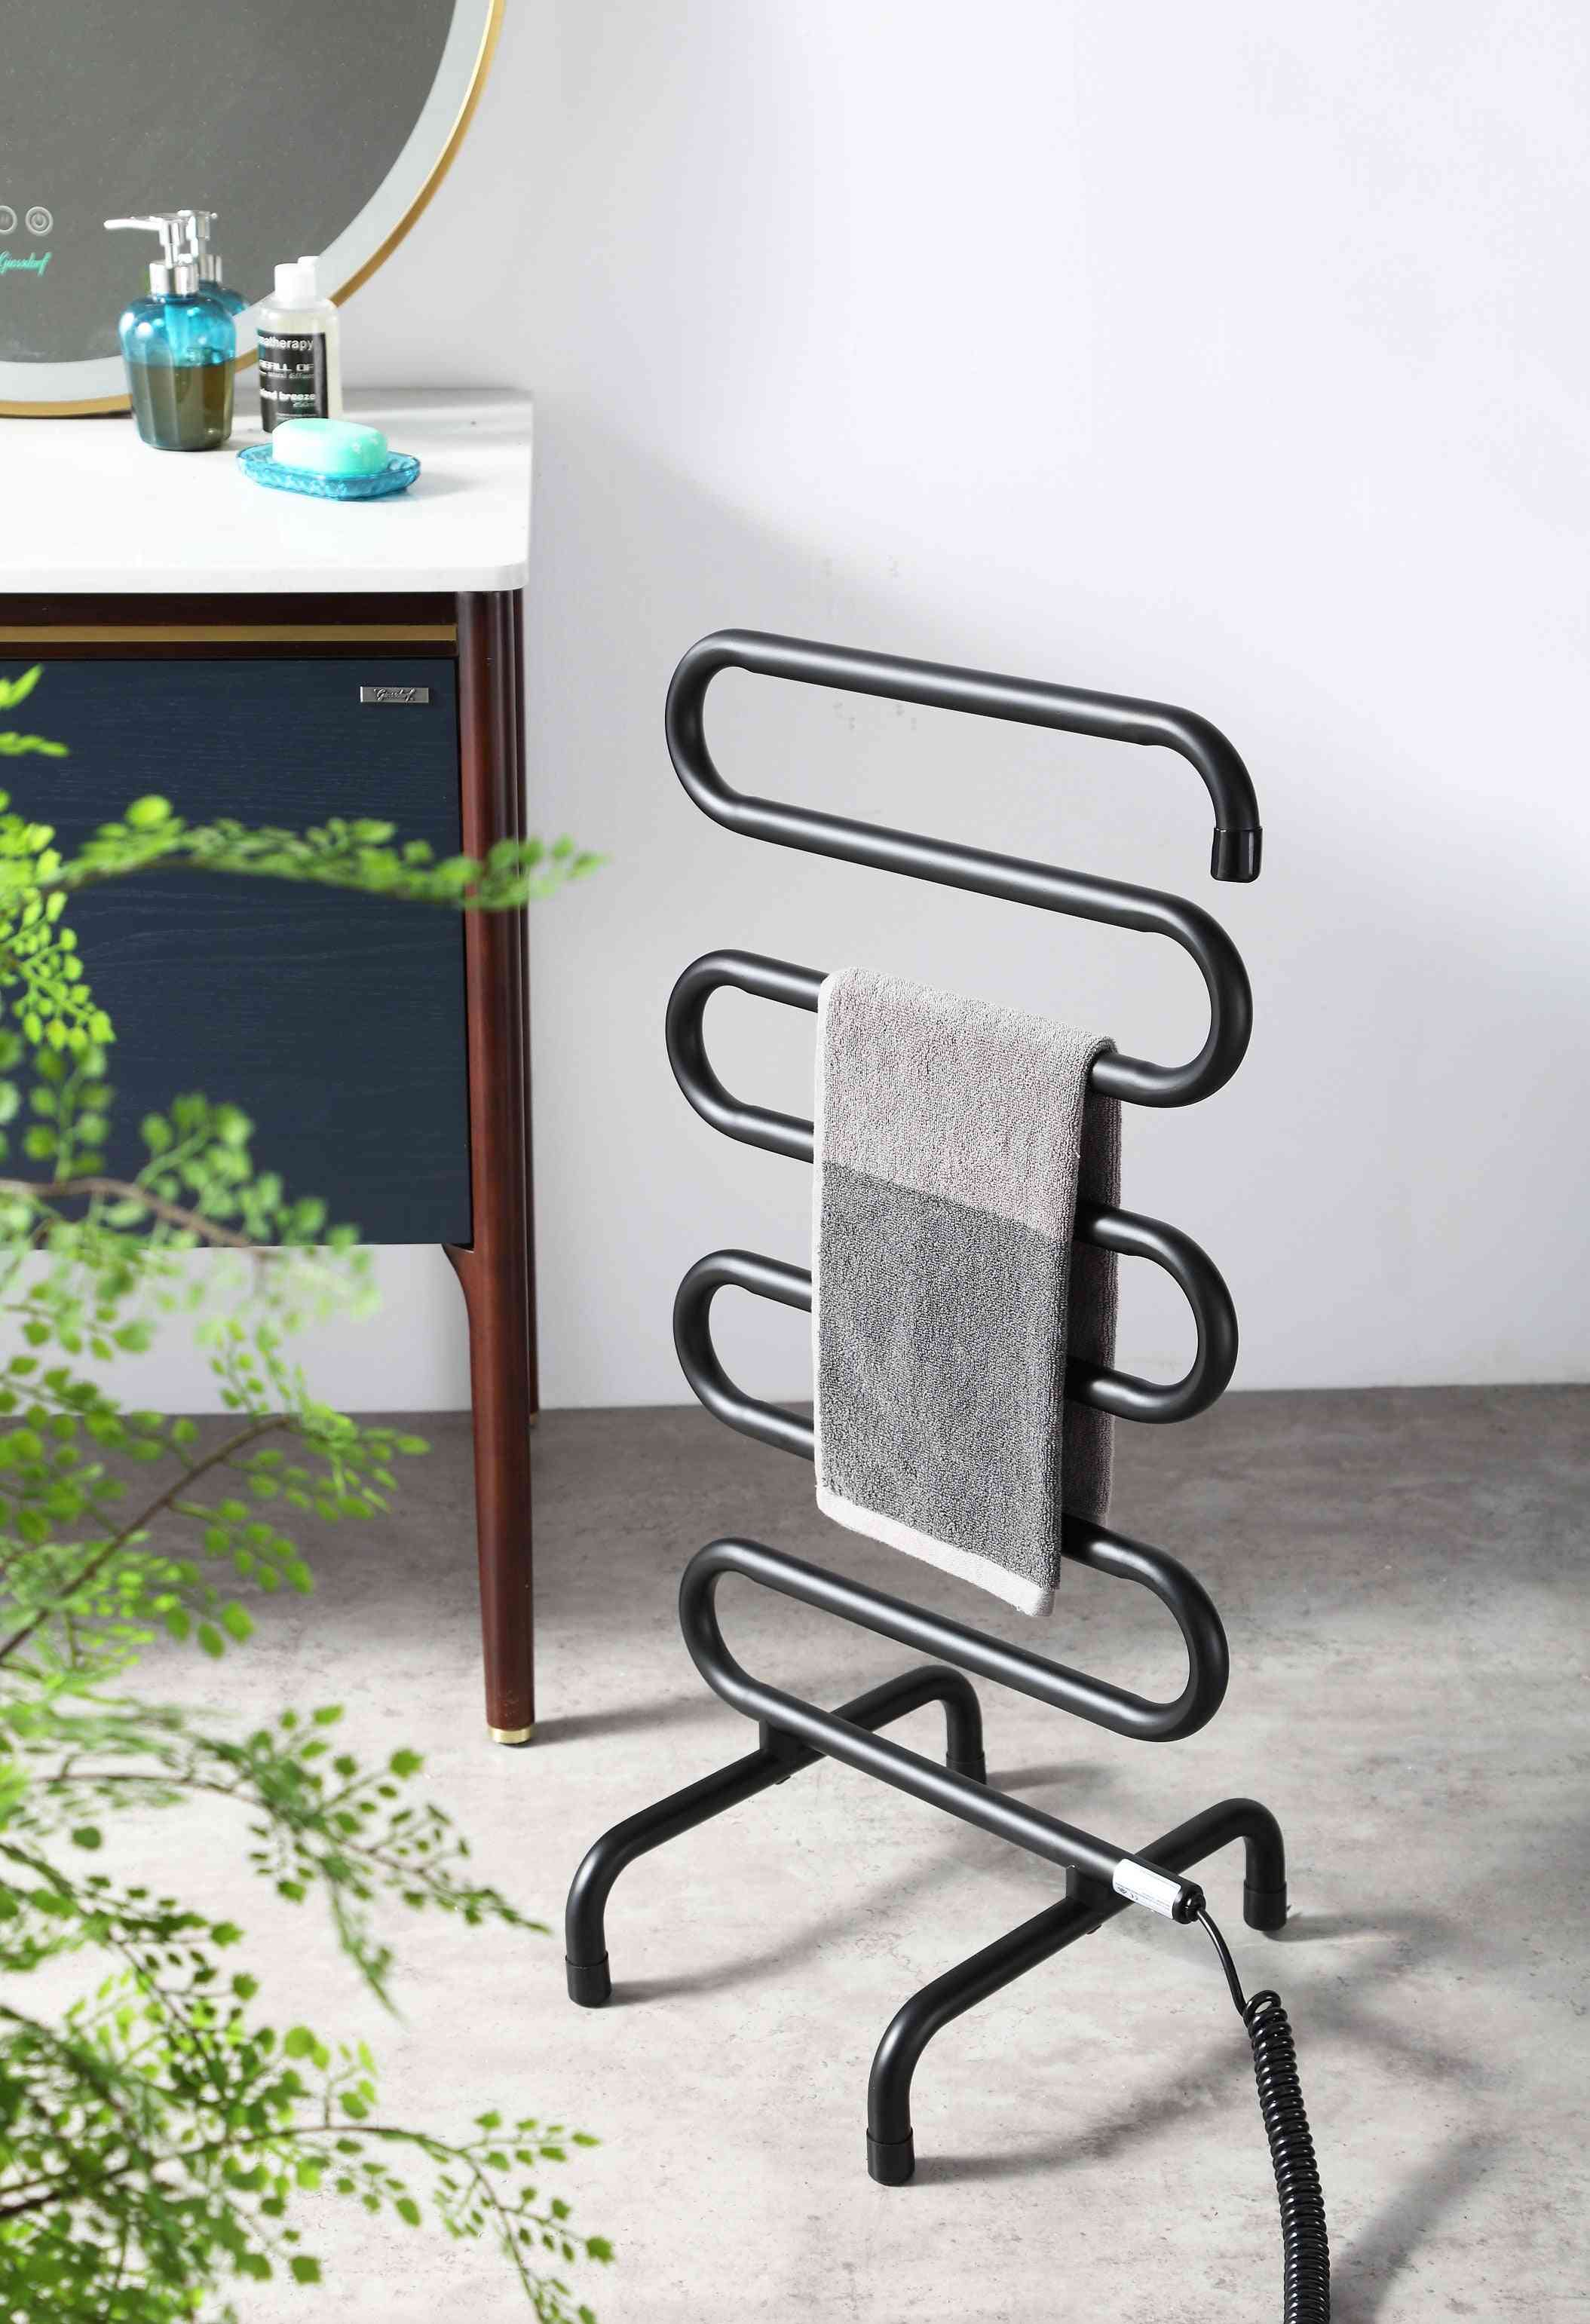 Stainless Steel, Portable And Electric Towel Drying Rack